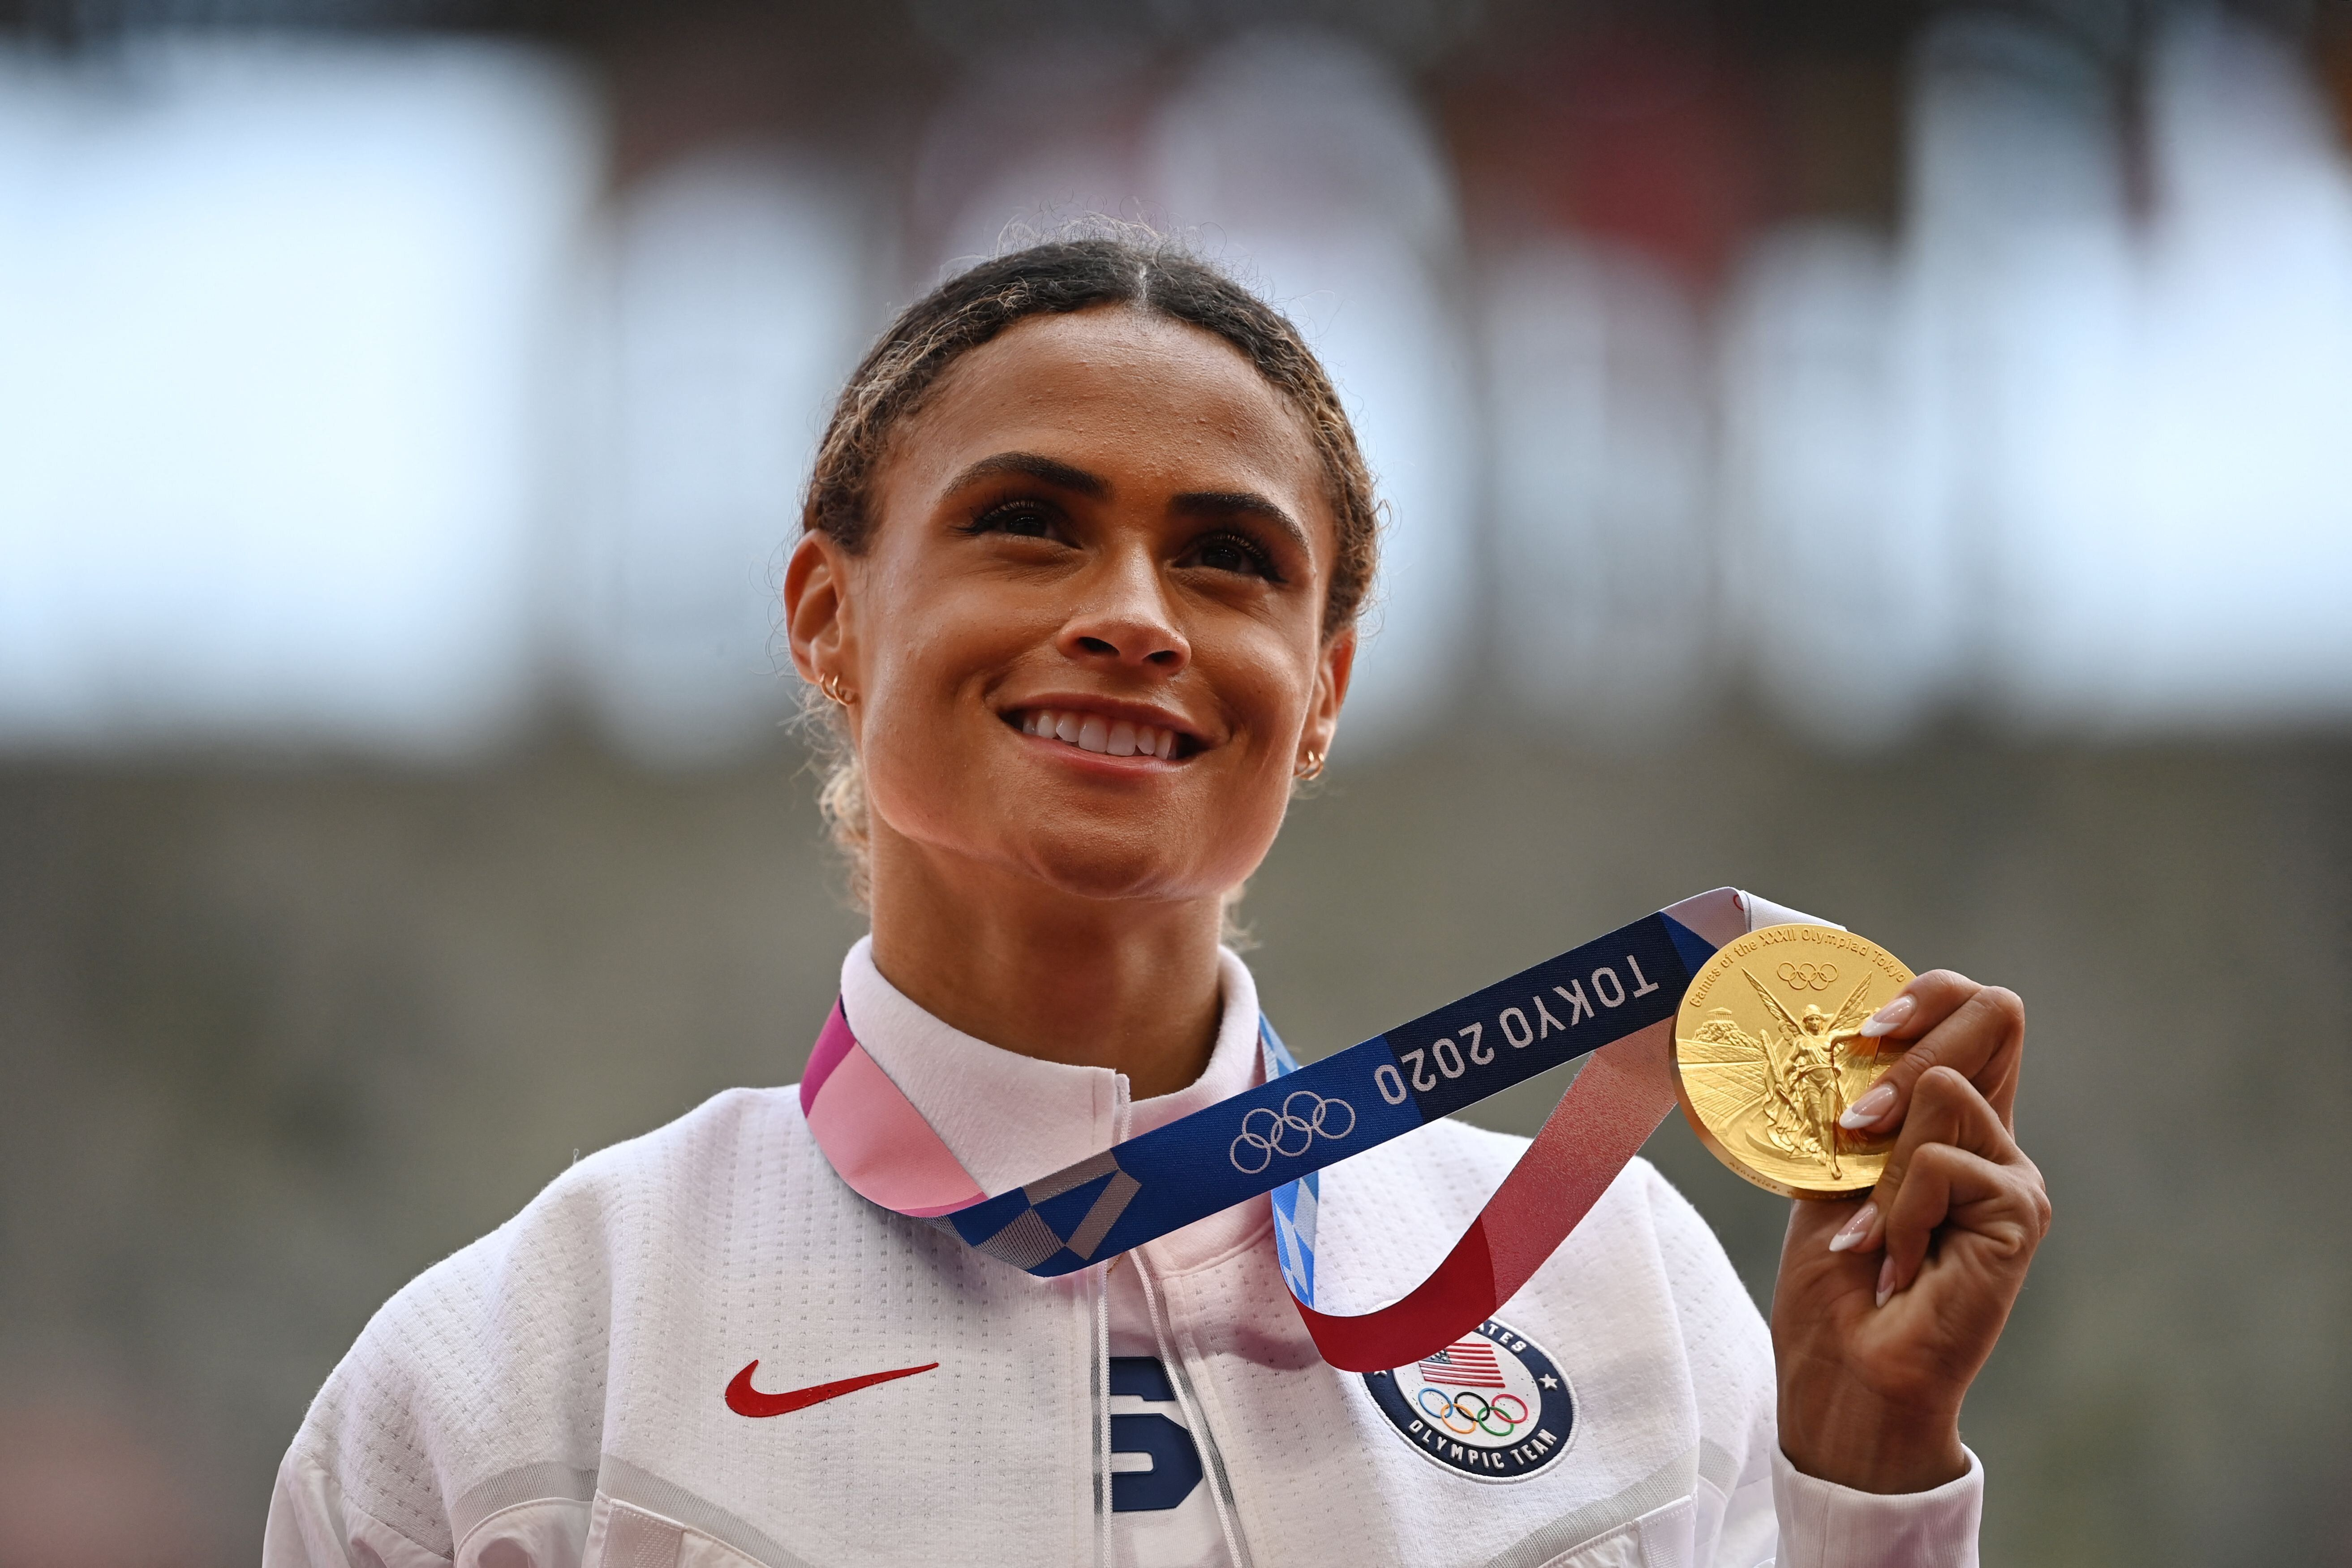 Gold medallist USA's Sydney Mclaughlin won the women's 400m hurdles event during the Tokyo 2020 Olympic Games on Wednesday.